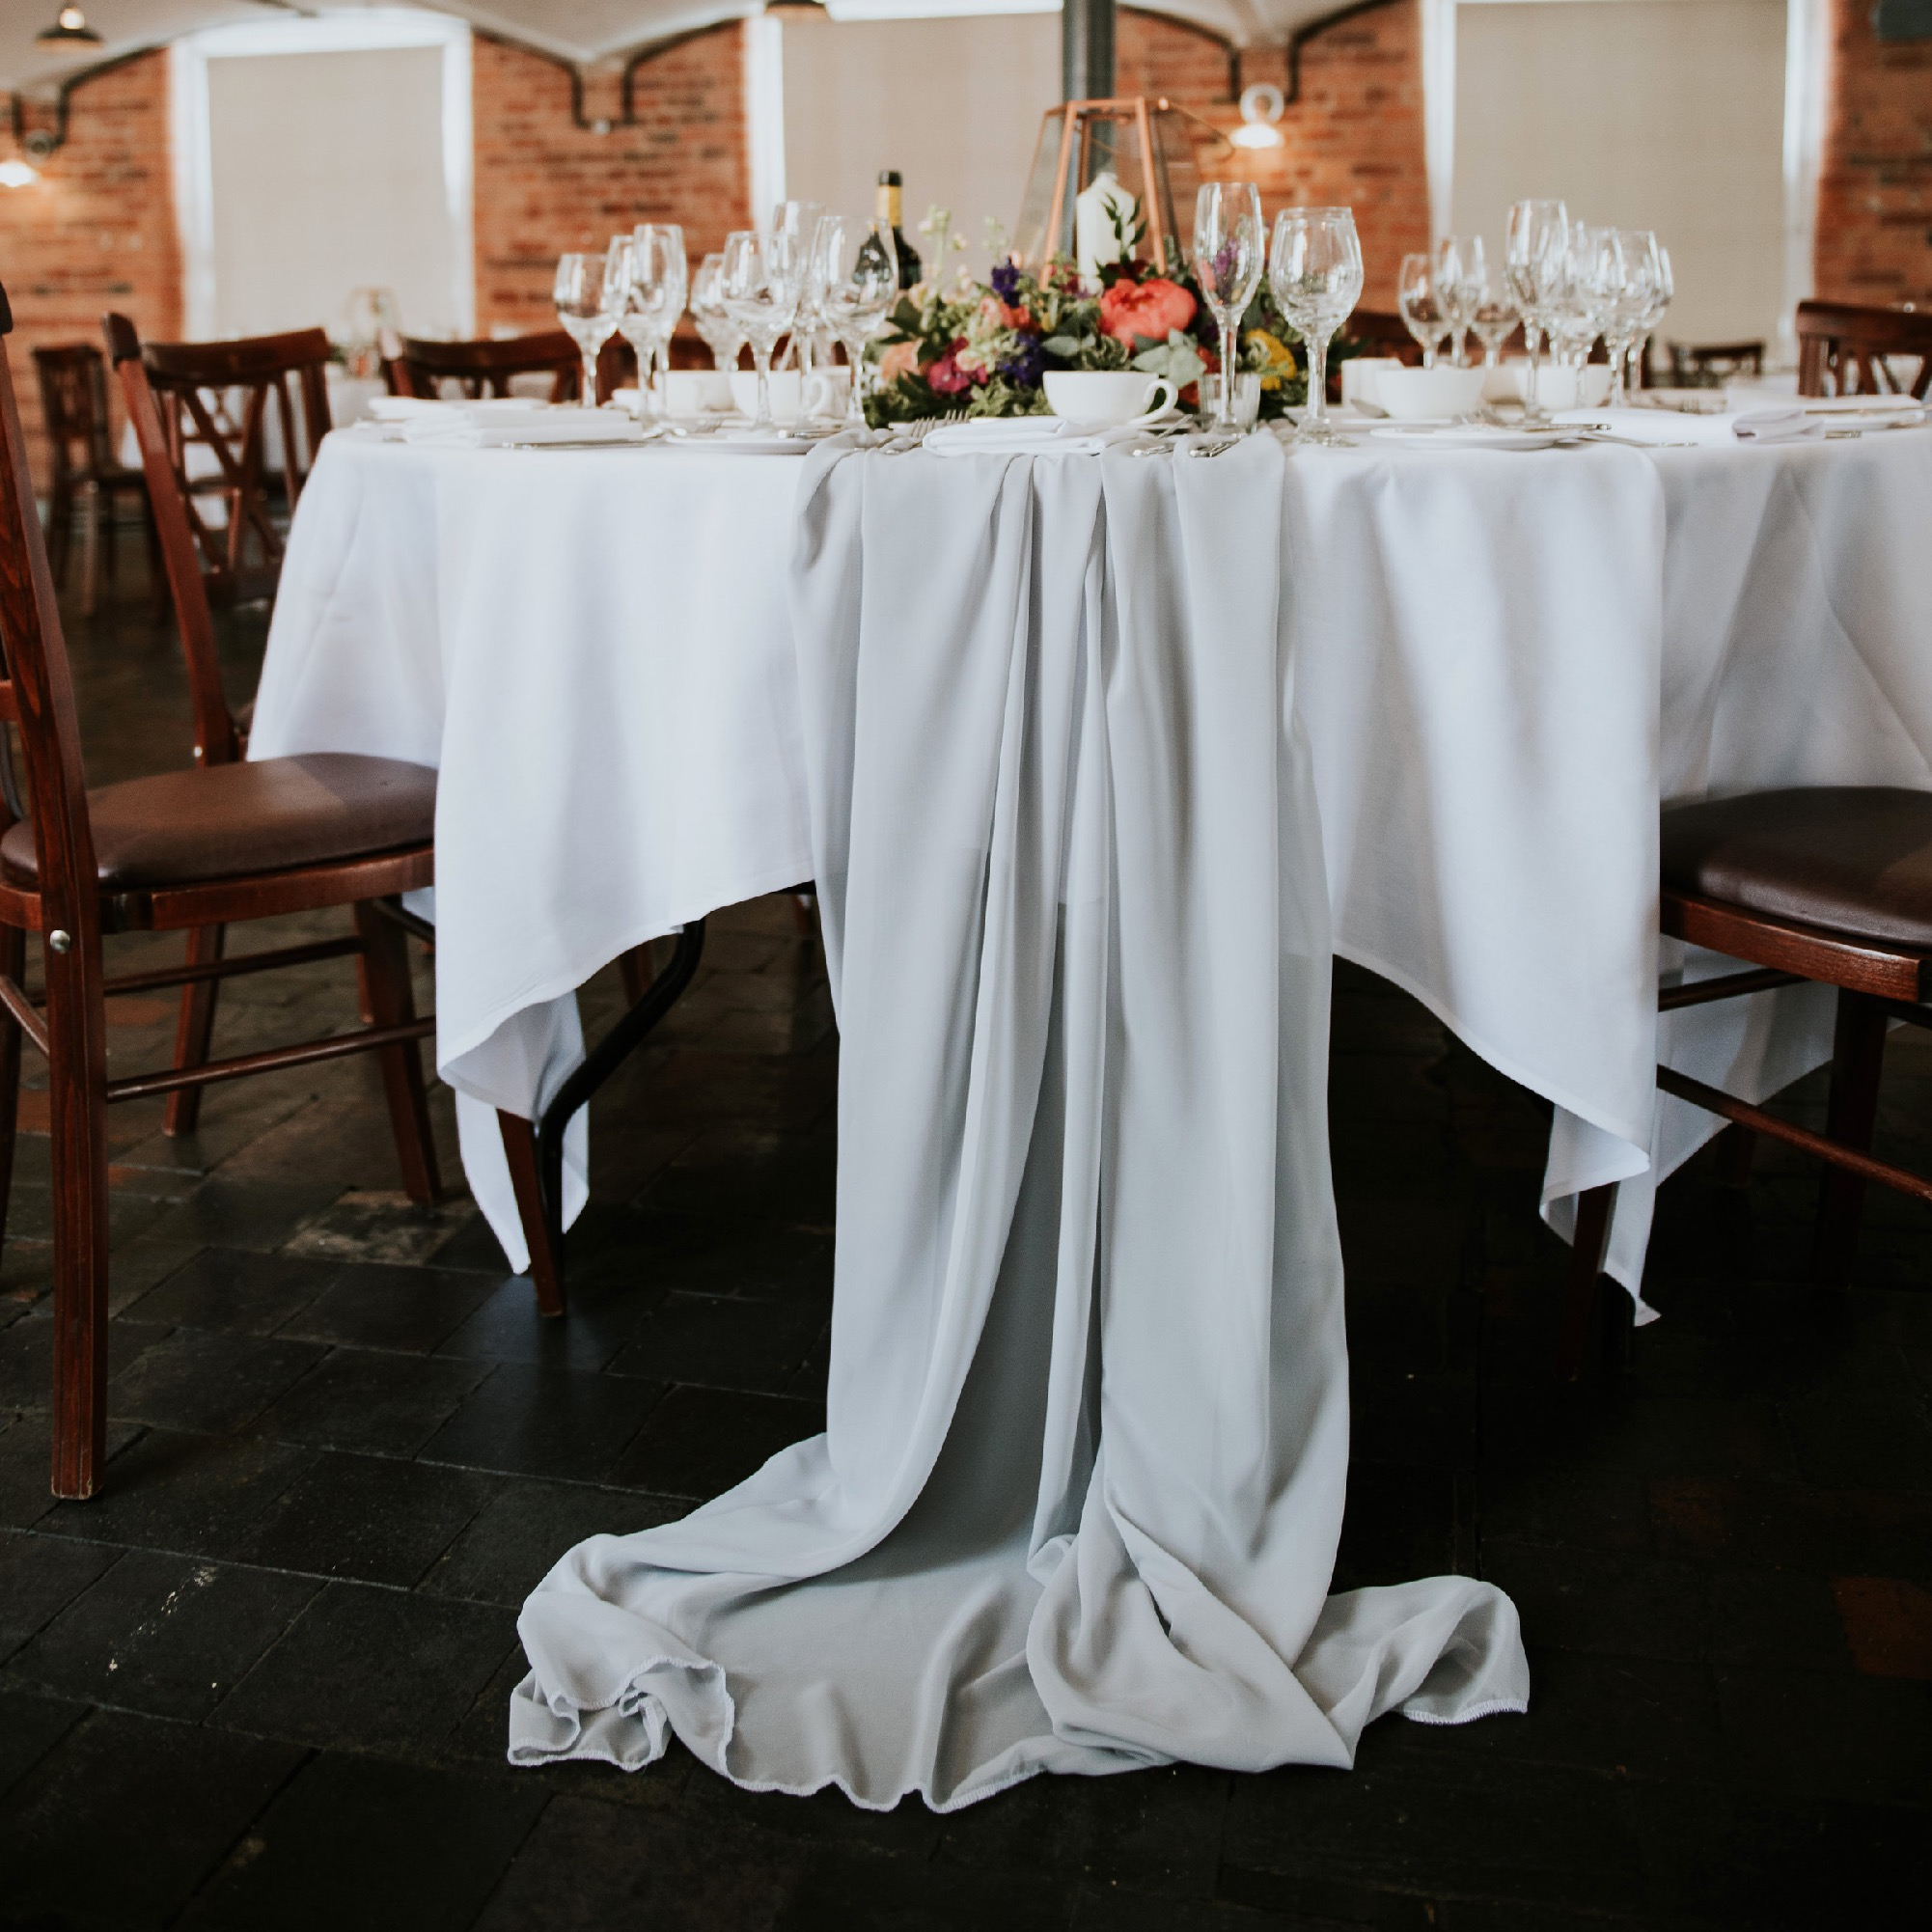 CHIFFON DRAPERY TABLE RUNNER